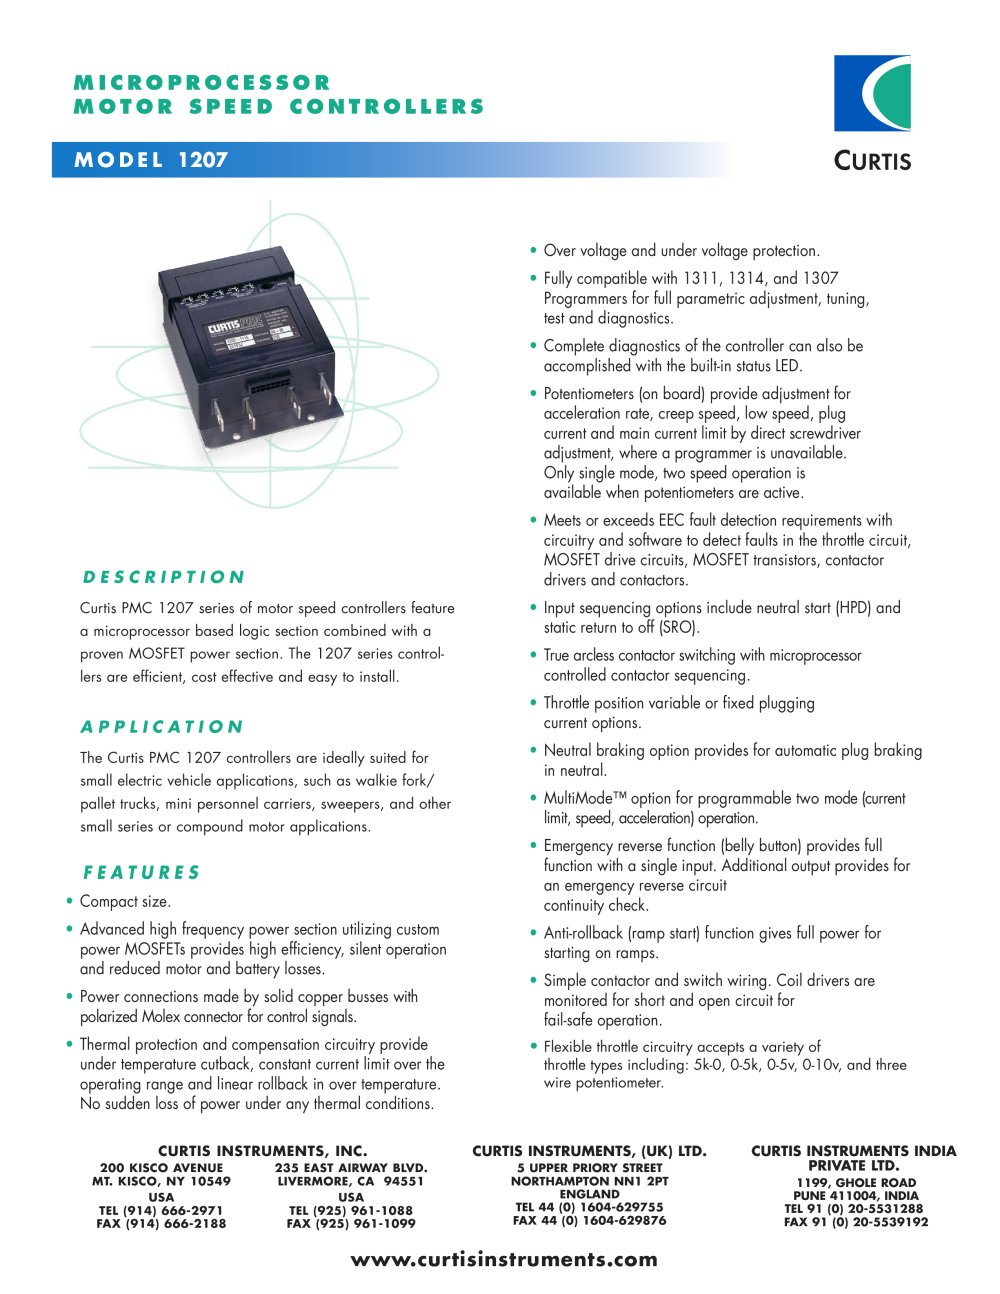 Motor Speed Controllers 1207 - Curtis Instruments - PDF Catalogue ...